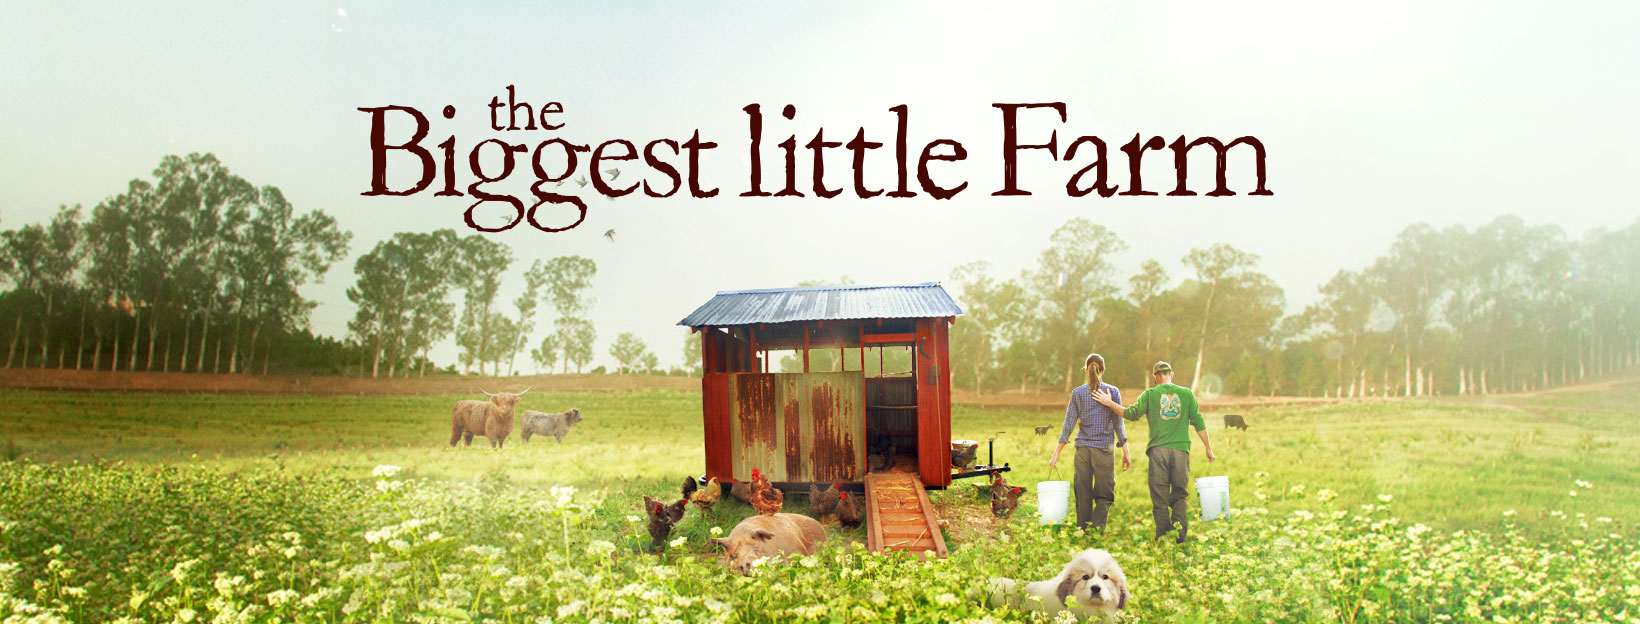 The Biggest Little Farm - One of the best documentaries I've seen